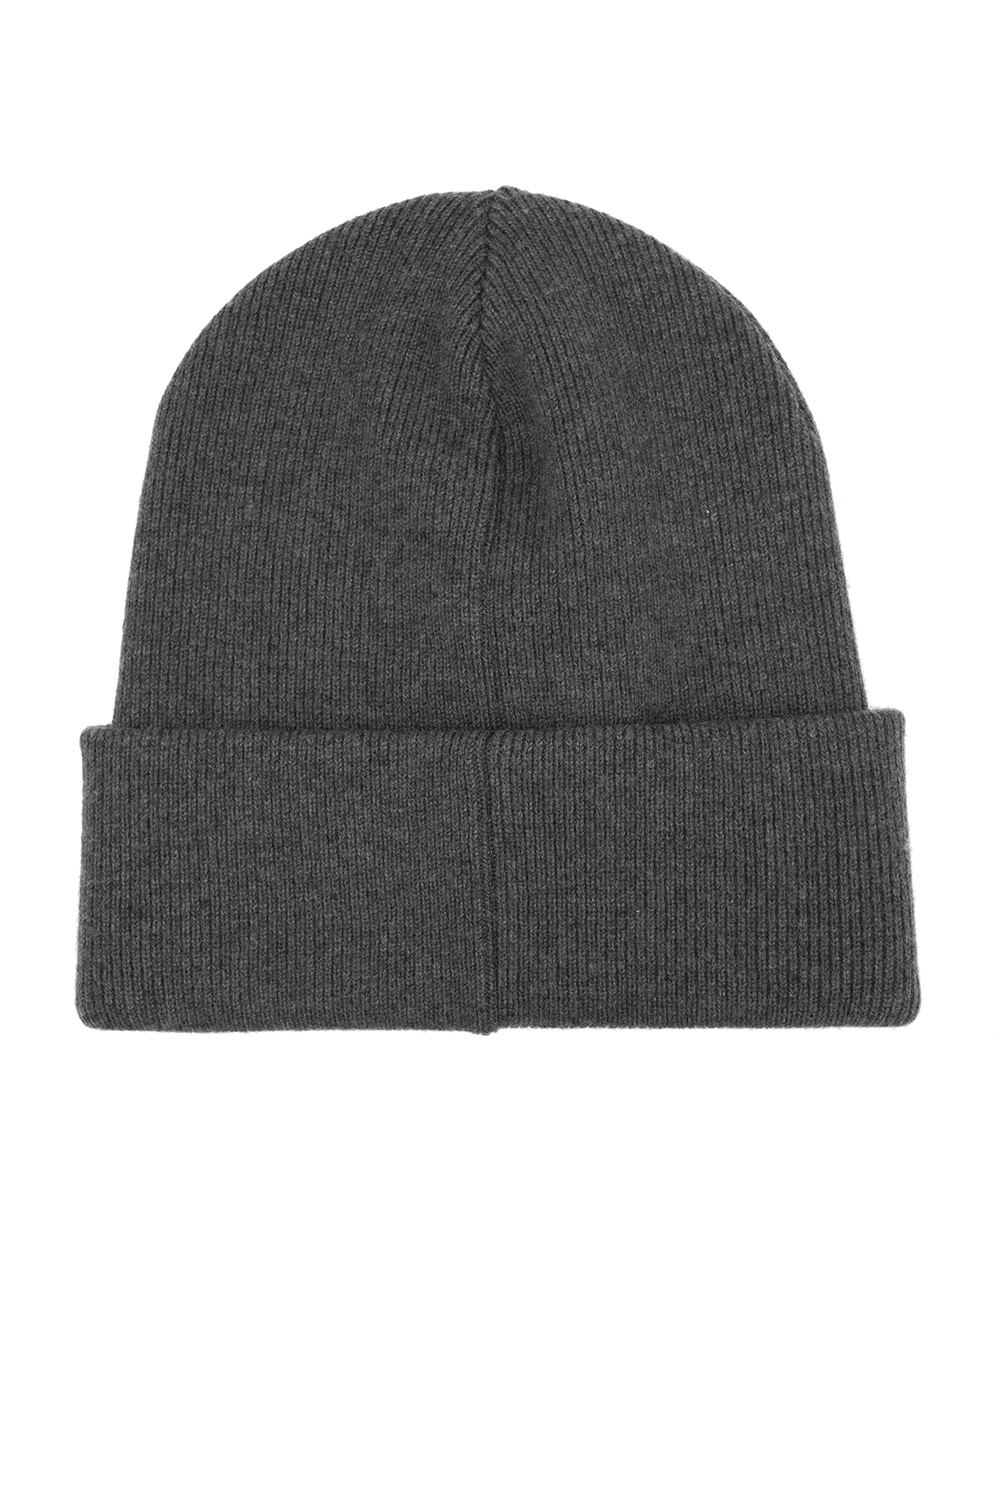 Dsquared2 Wool hat with logo